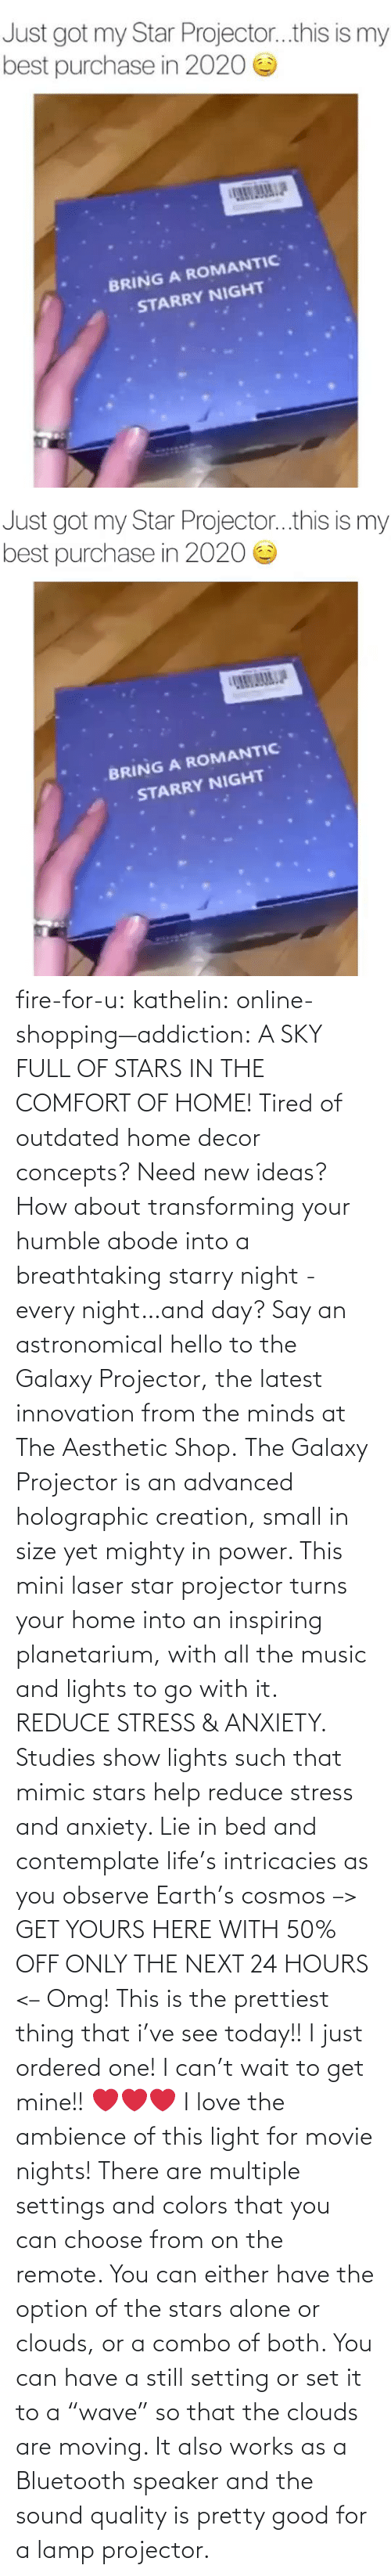 "yours: fire-for-u:  kathelin: online-shopping—addiction:  A SKY FULL OF STARS IN THE COMFORT OF HOME! Tired of outdated home decor concepts? Need new ideas? How about transforming your humble abode into a breathtaking starry night - every night…and day? Say an astronomical hello to the Galaxy Projector, the latest innovation from the minds at The Aesthetic Shop. The Galaxy Projector is an advanced holographic creation, small in size yet mighty in power. This mini laser star projector turns your home into an inspiring planetarium, with all the music and lights to go with it. REDUCE STRESS & ANXIETY. Studies show lights such that mimic stars help reduce stress and anxiety. Lie in bed and contemplate life's intricacies as you observe Earth's cosmos  –> GET YOURS HERE WITH 50% OFF ONLY THE NEXT 24 HOURS <–   Omg! This is the prettiest thing that i've see today!! I just ordered one! I can't wait to get mine!! ❤️️❤️️❤️️  I love the ambience of this light for movie nights! There are multiple settings and colors that you can choose from on the remote. You can either have the option of the stars alone or clouds, or a combo of both. You can have a still setting or set it to a ""wave"" so that the clouds are moving. It also works as a Bluetooth speaker and the sound quality is pretty good for a lamp projector."